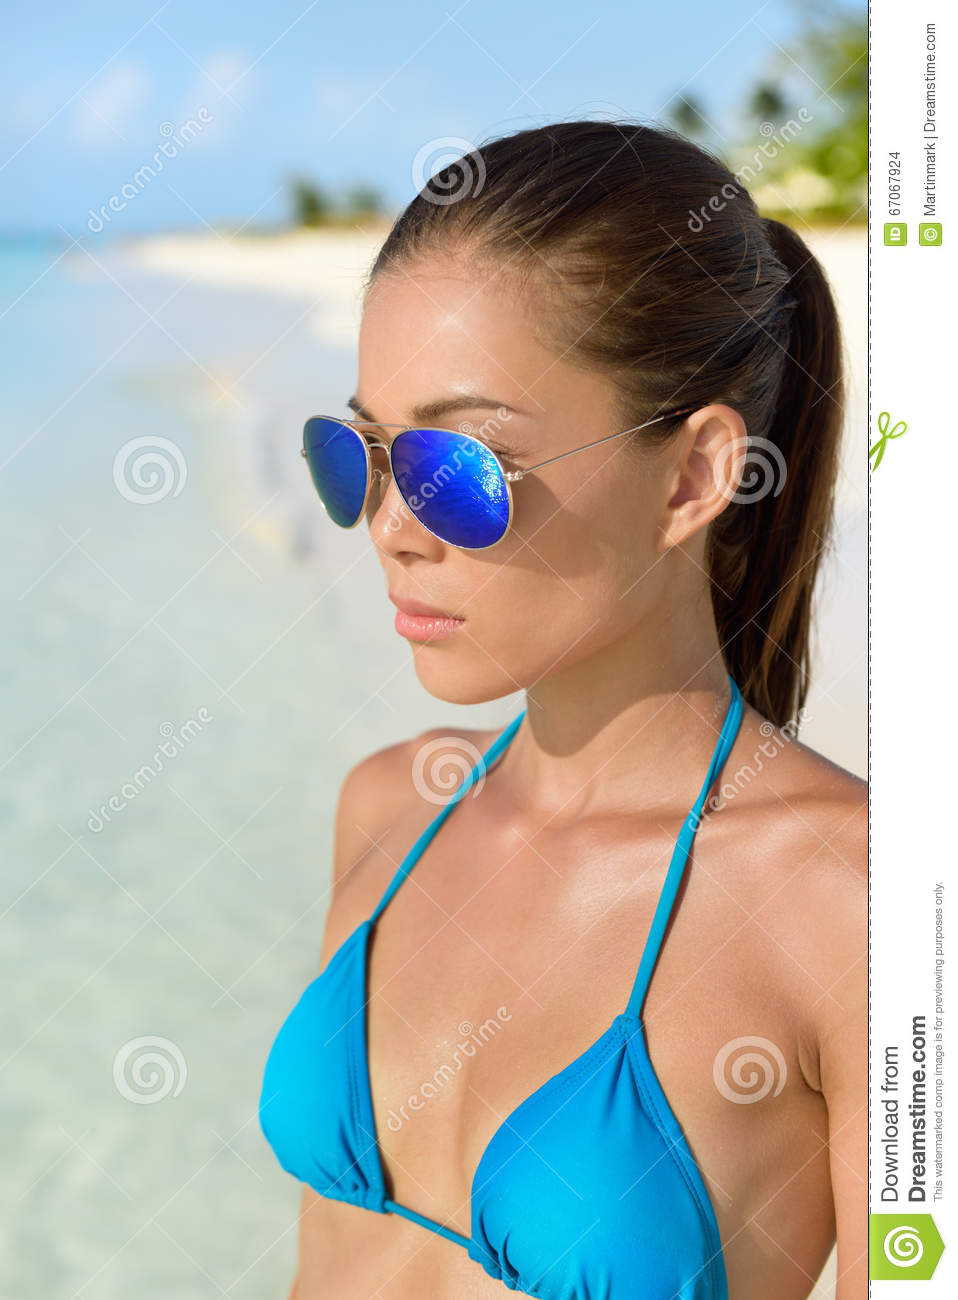 Sunglasses Beach Asian Woman With Blue Bikini Stock Photo ...